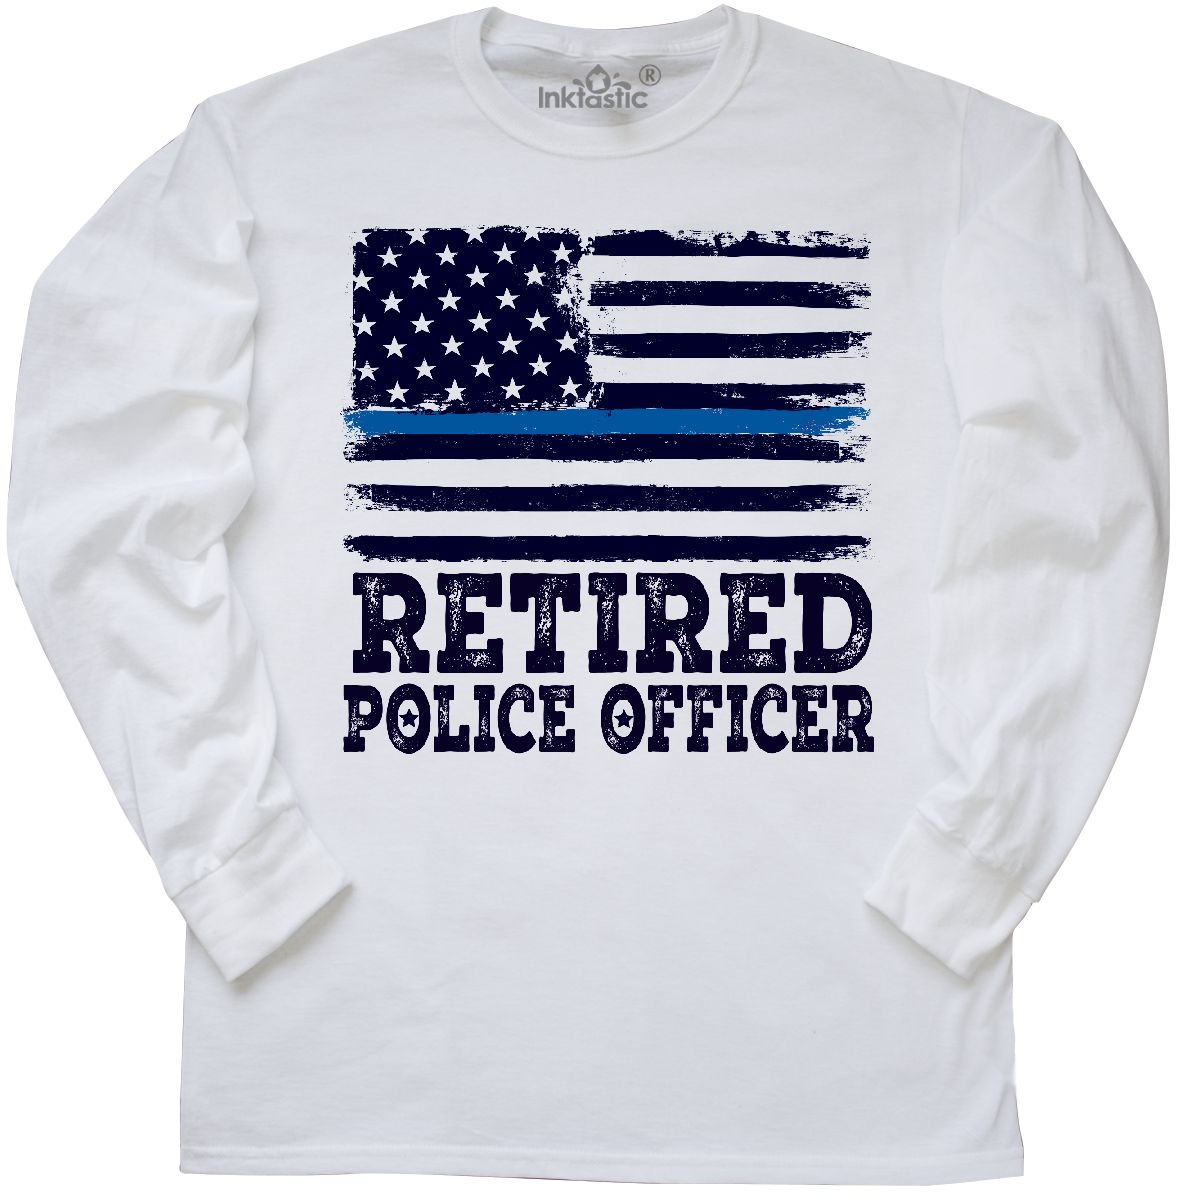 Inktastic Retired Police Officer Gift Long Sleeve T-Shirt Retirement Policeman